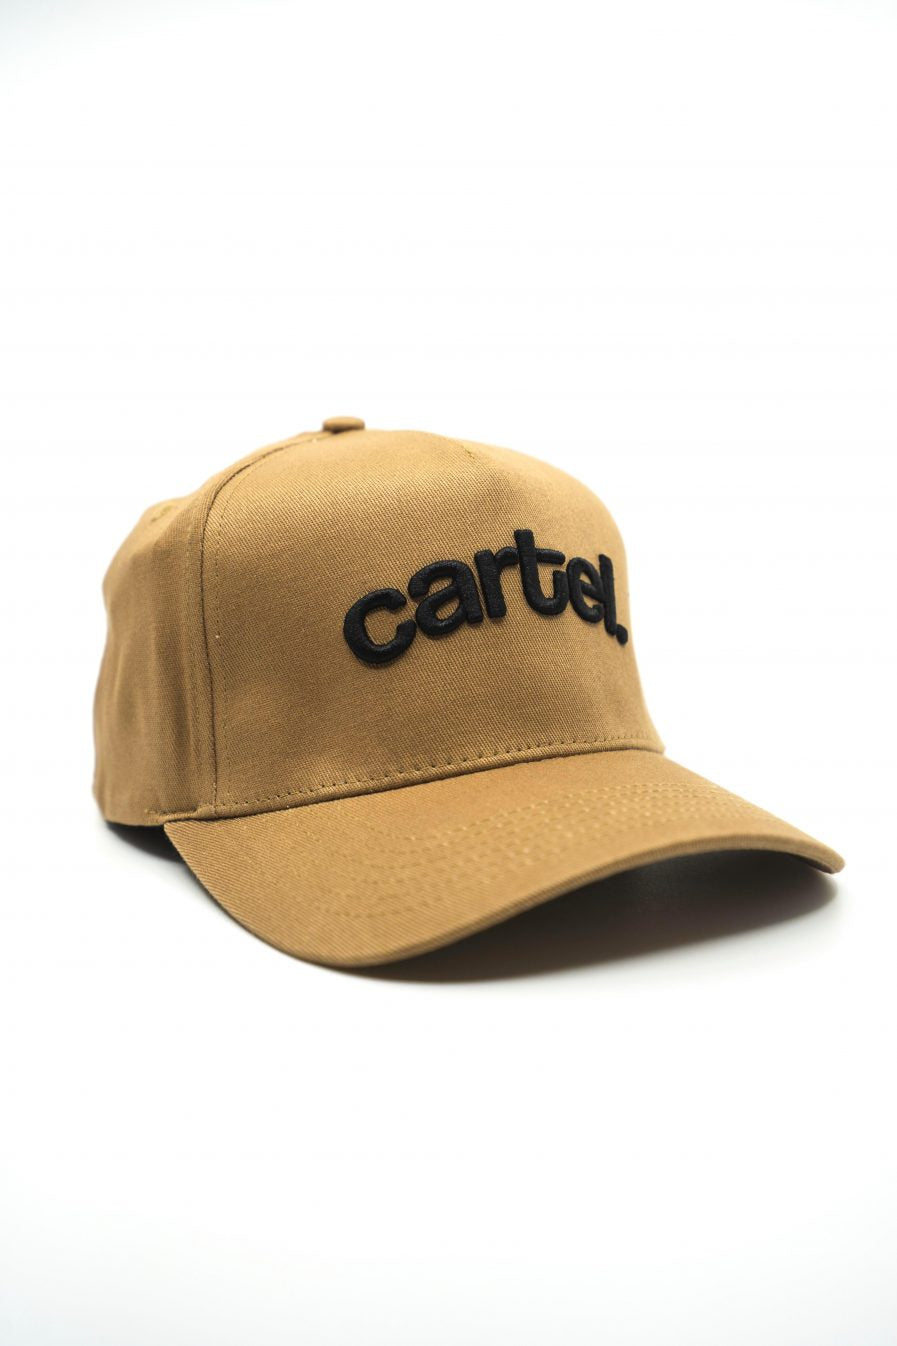 Snapback - Tan (Black text) - CartelStoreOfficial